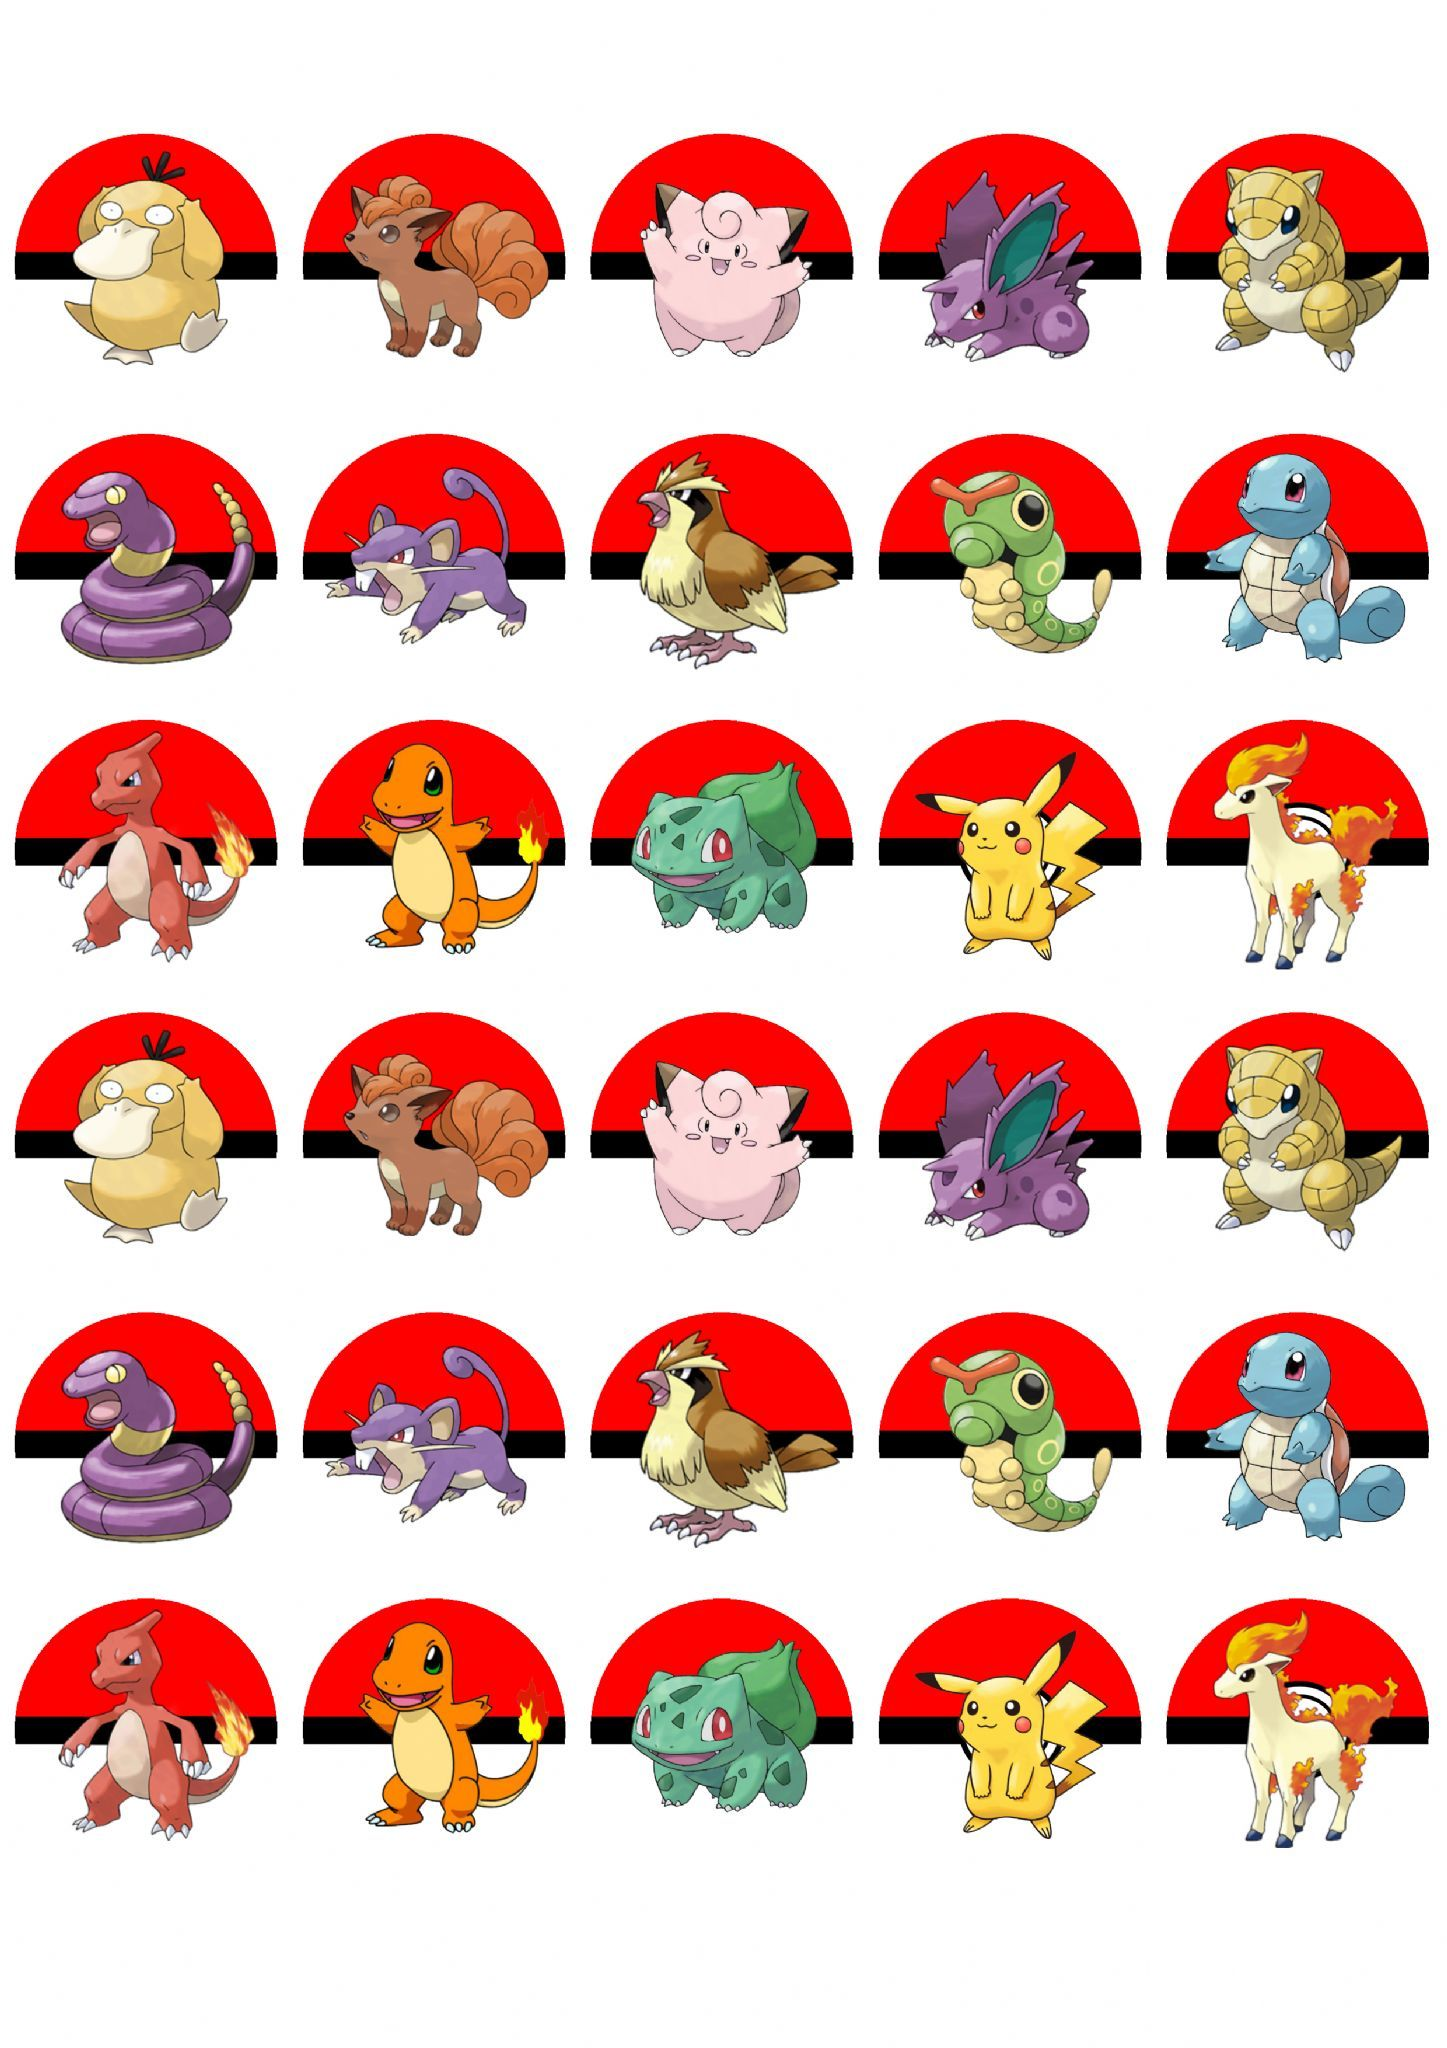 Pokemon Edible Cupcake Muffin Toppers Pack Of  These Toppers Are Ideal For Parties And Are Completely Edible And Look Fantastic The Toppers Are